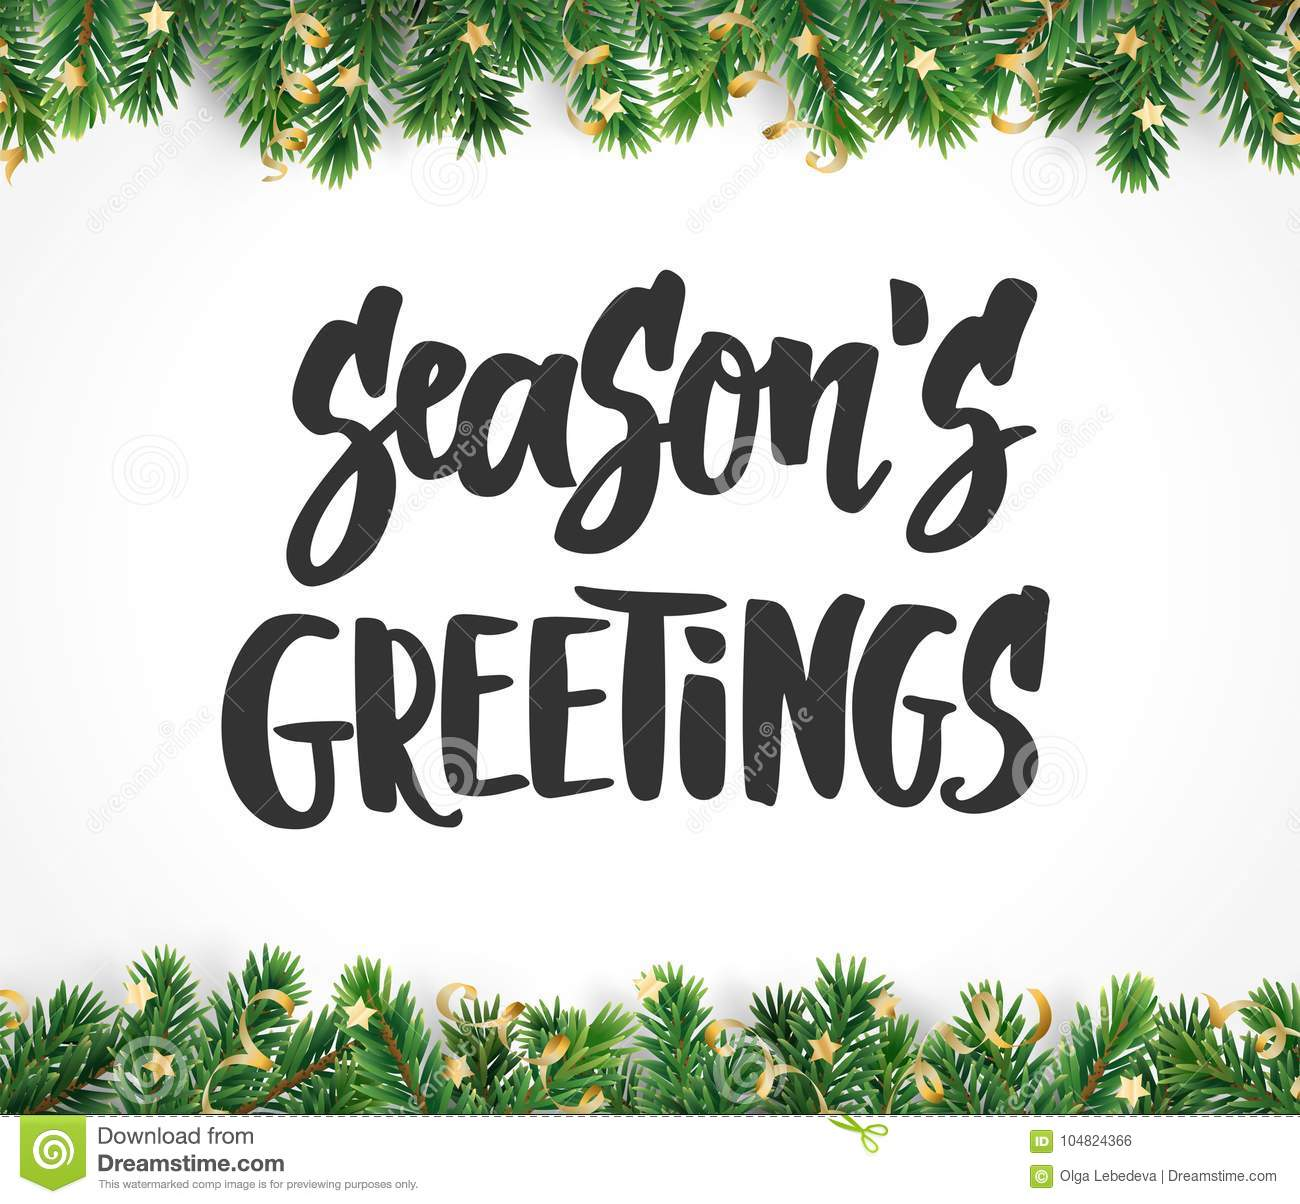 Seasons Greetings Text Hand Drawn Brush Lettering Holiday Quote